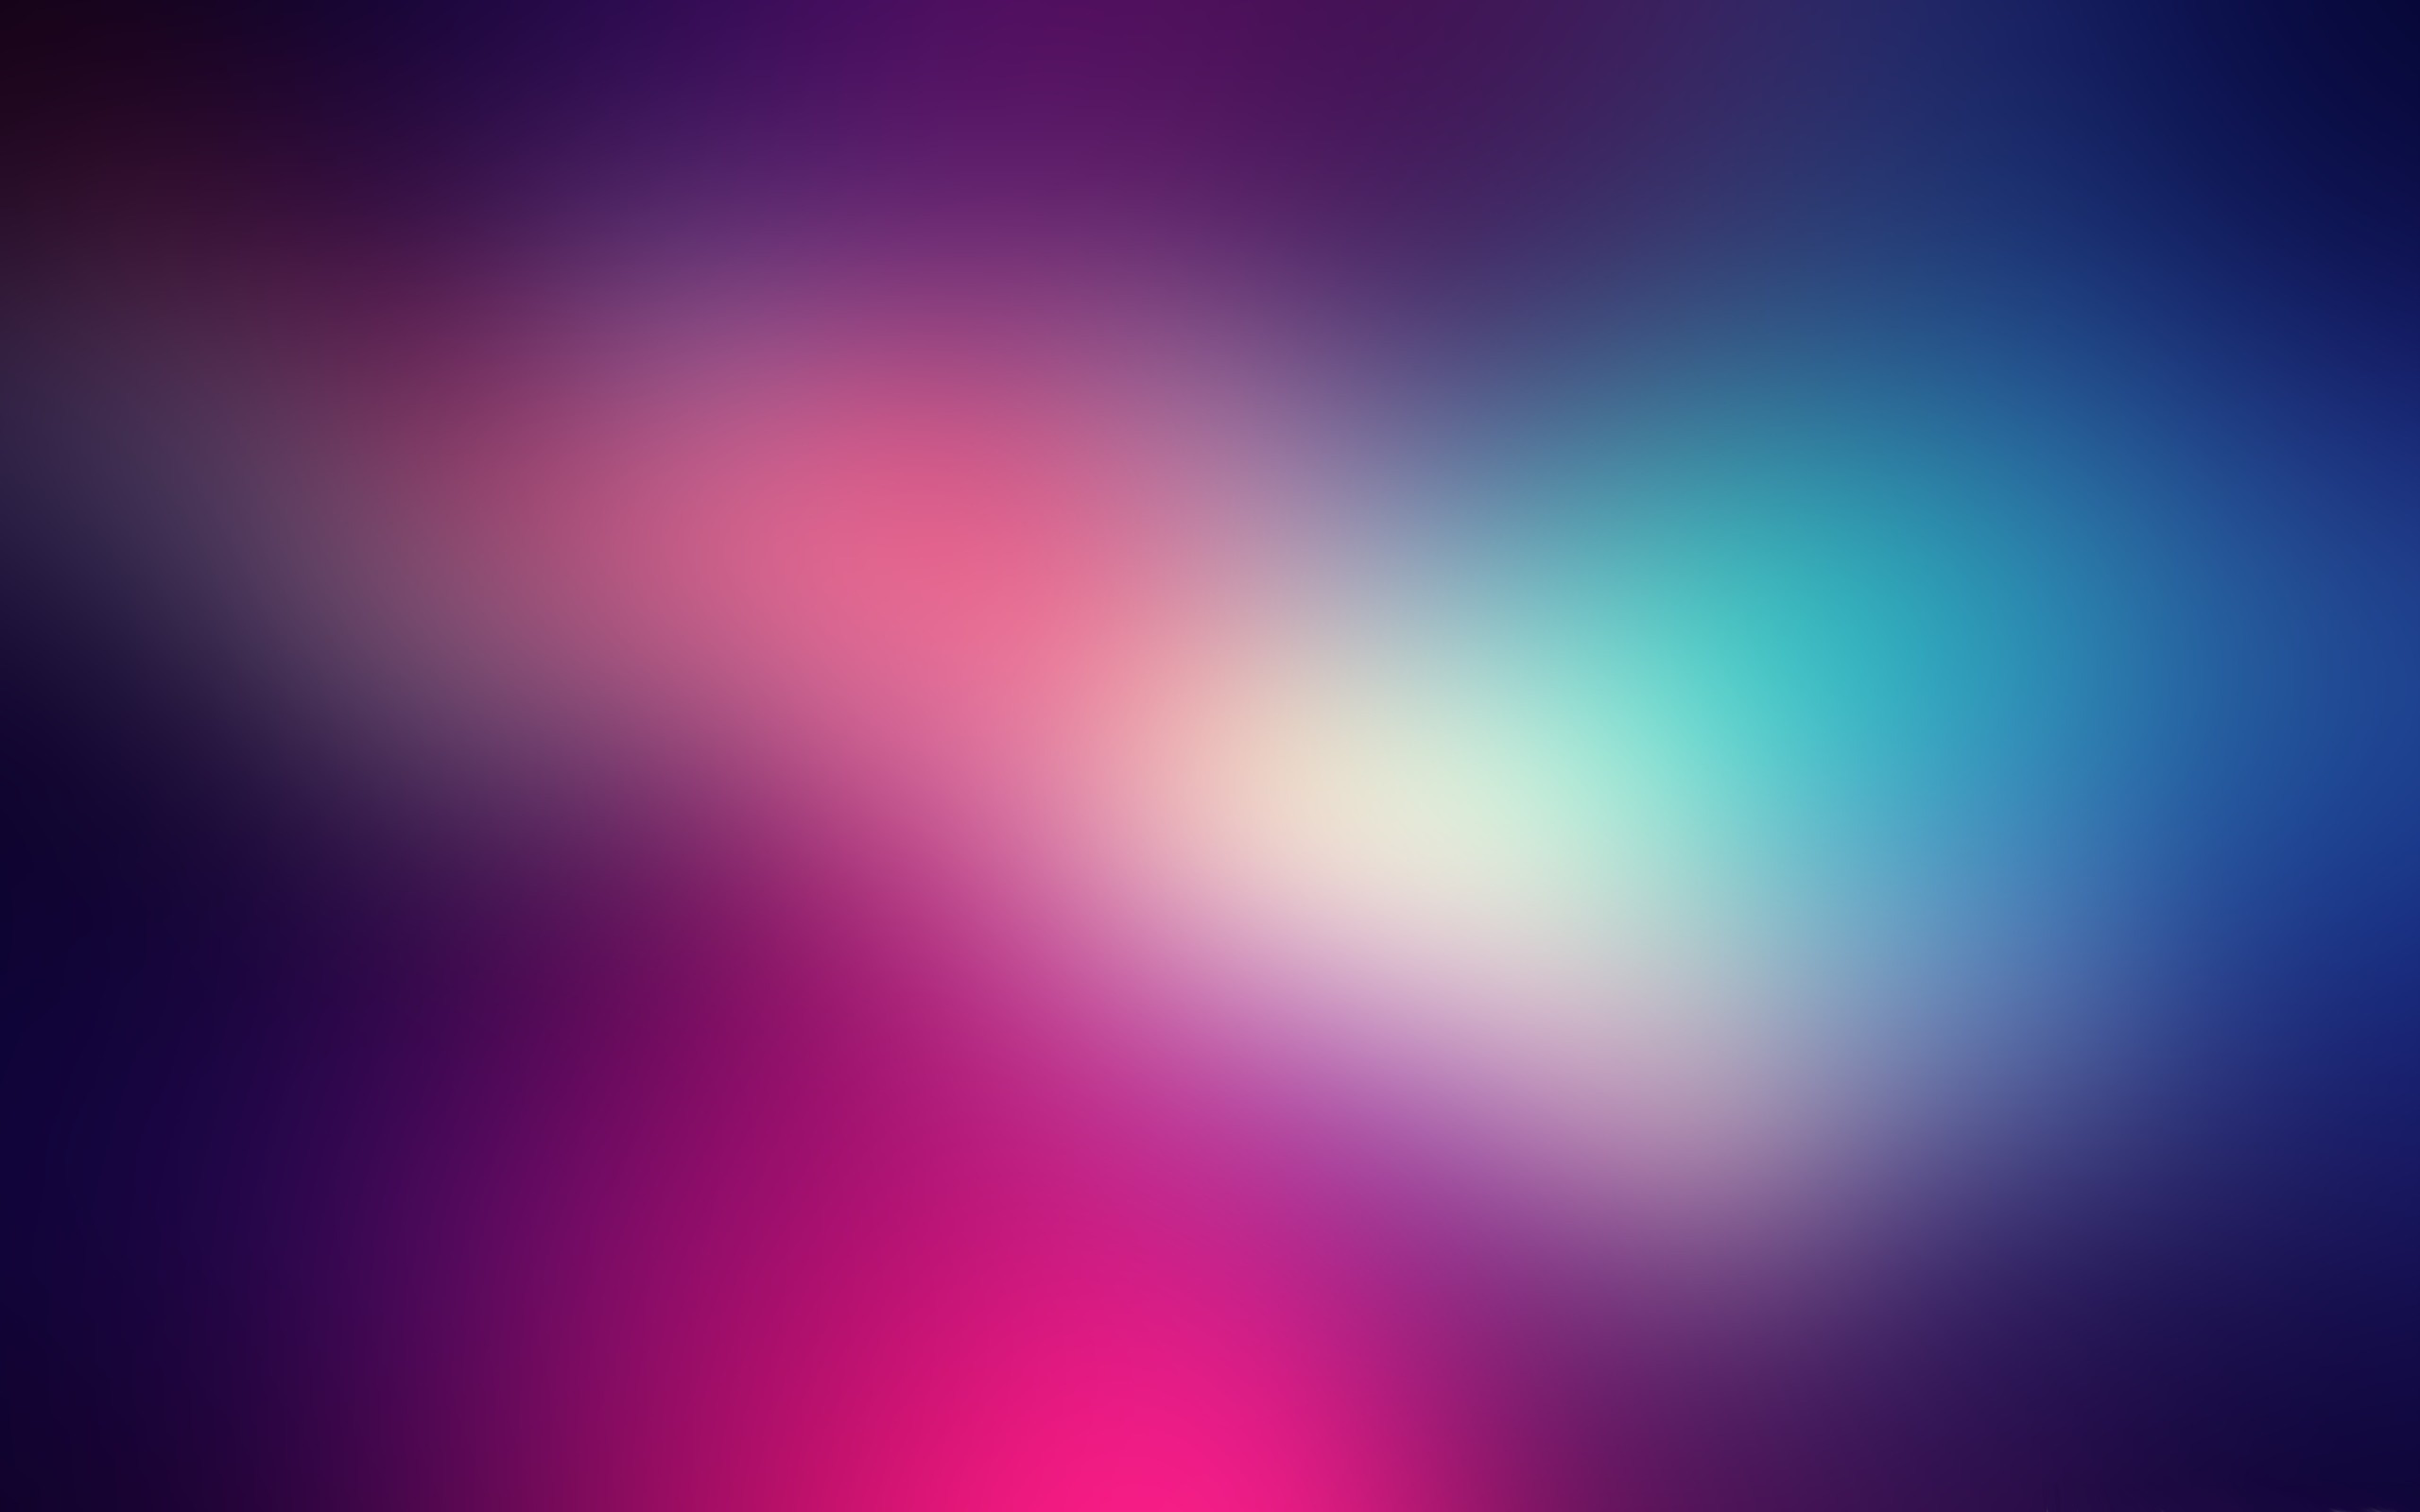 iOS 7 Wallpaper Abstract Rotten Apples